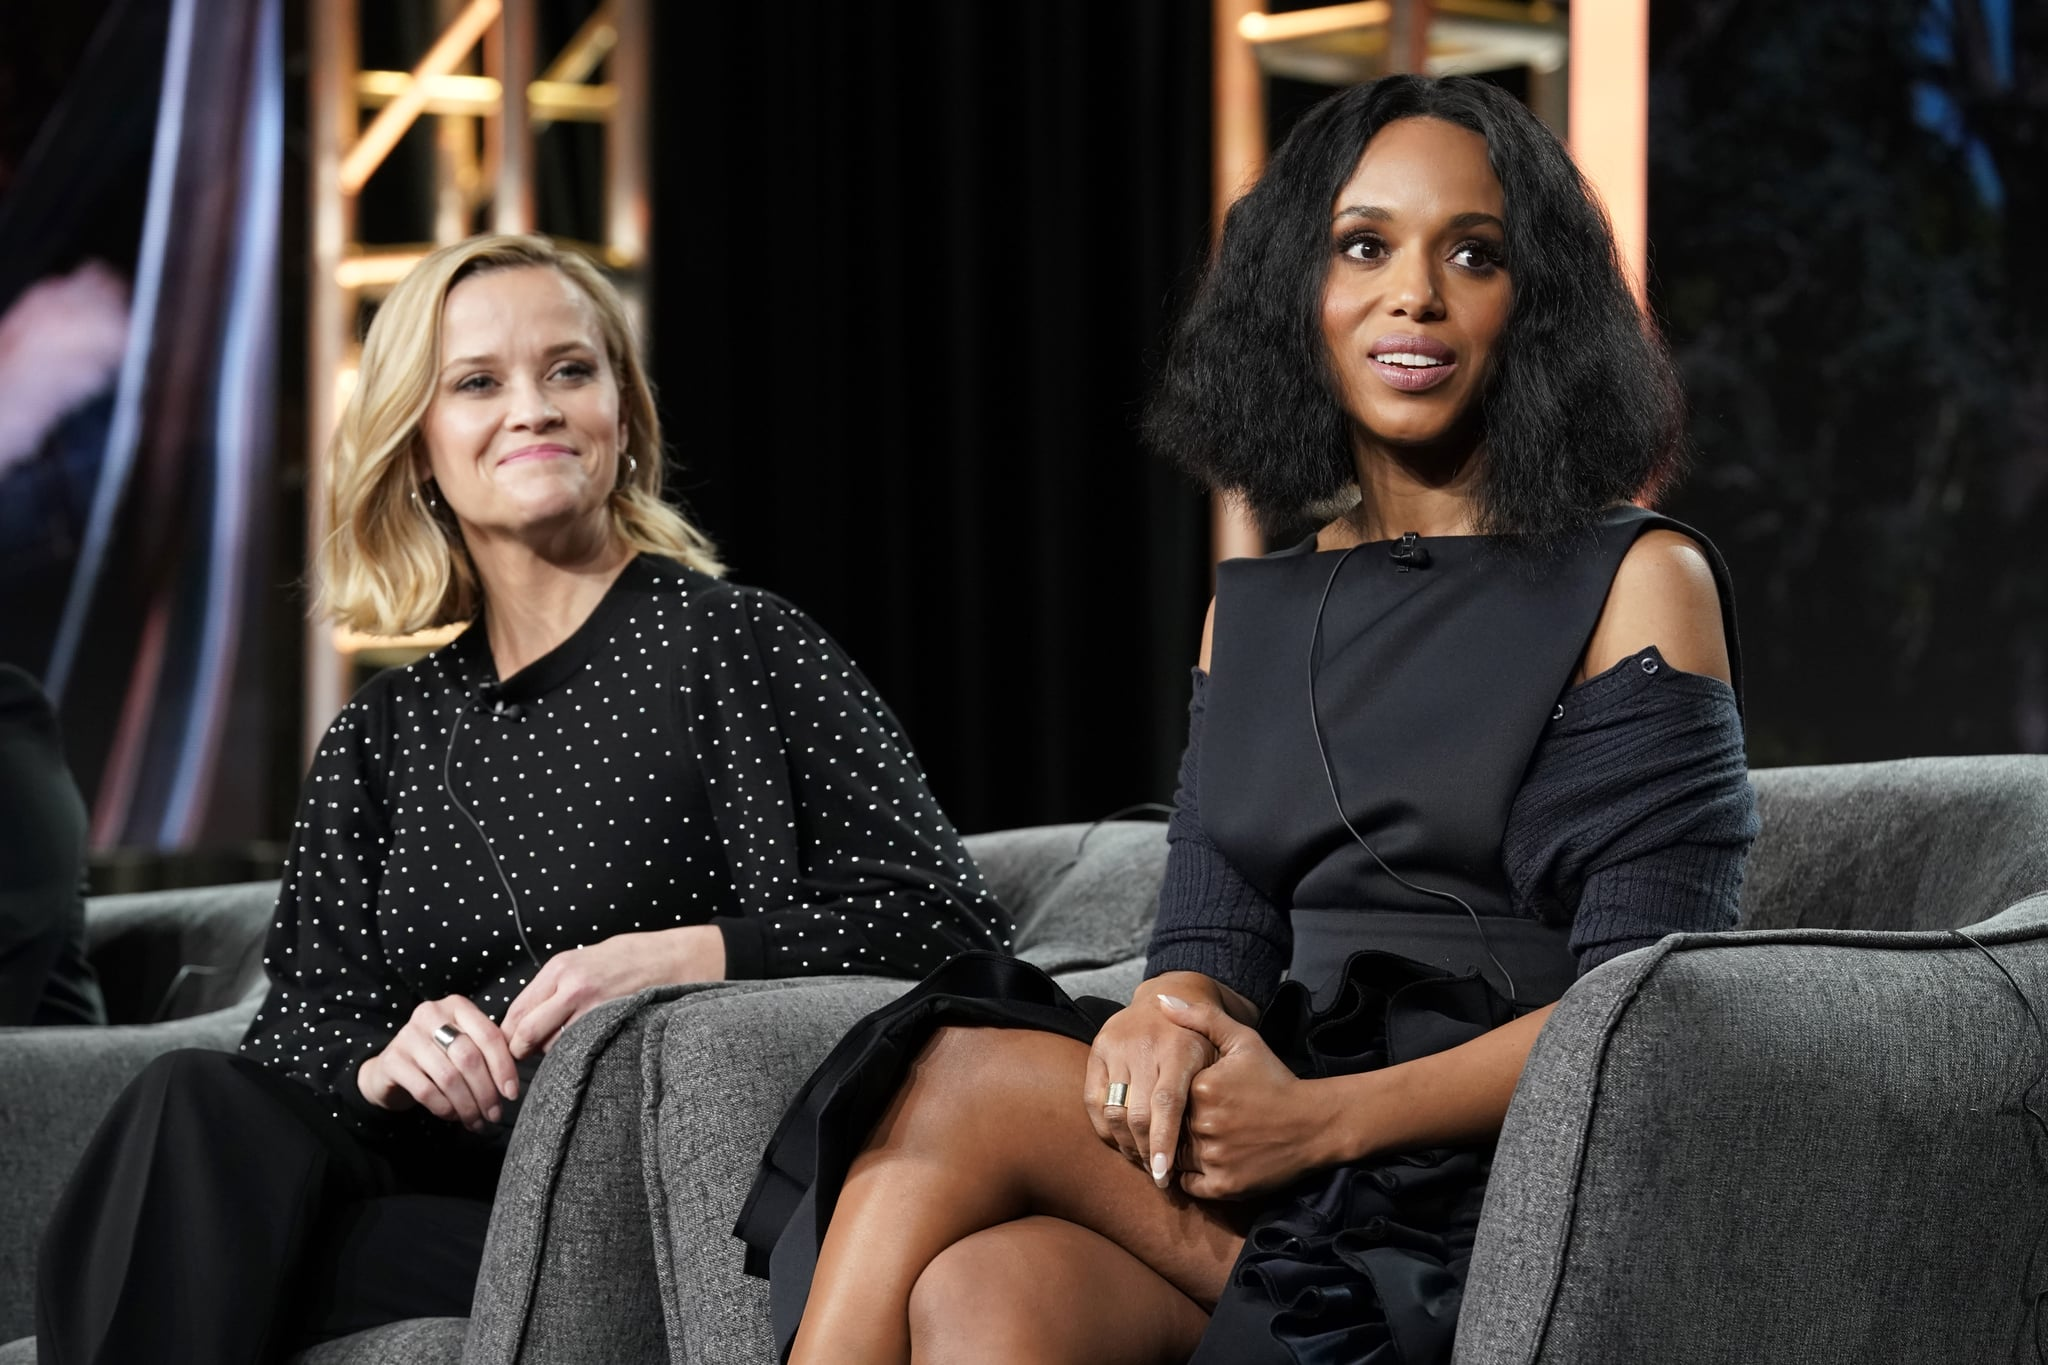 PASADENA, CALIFORNIA - JANUARY 17: (L-R) Reese Witherspoon and Kerry Washington speak onstage during the Hulu Panel at Winter TCA 2020 at The Langham Huntington, Pasadena on January 17, 2020 in Pasadena, California. (Photo by Erik Voake/Getty Images for Hulu)